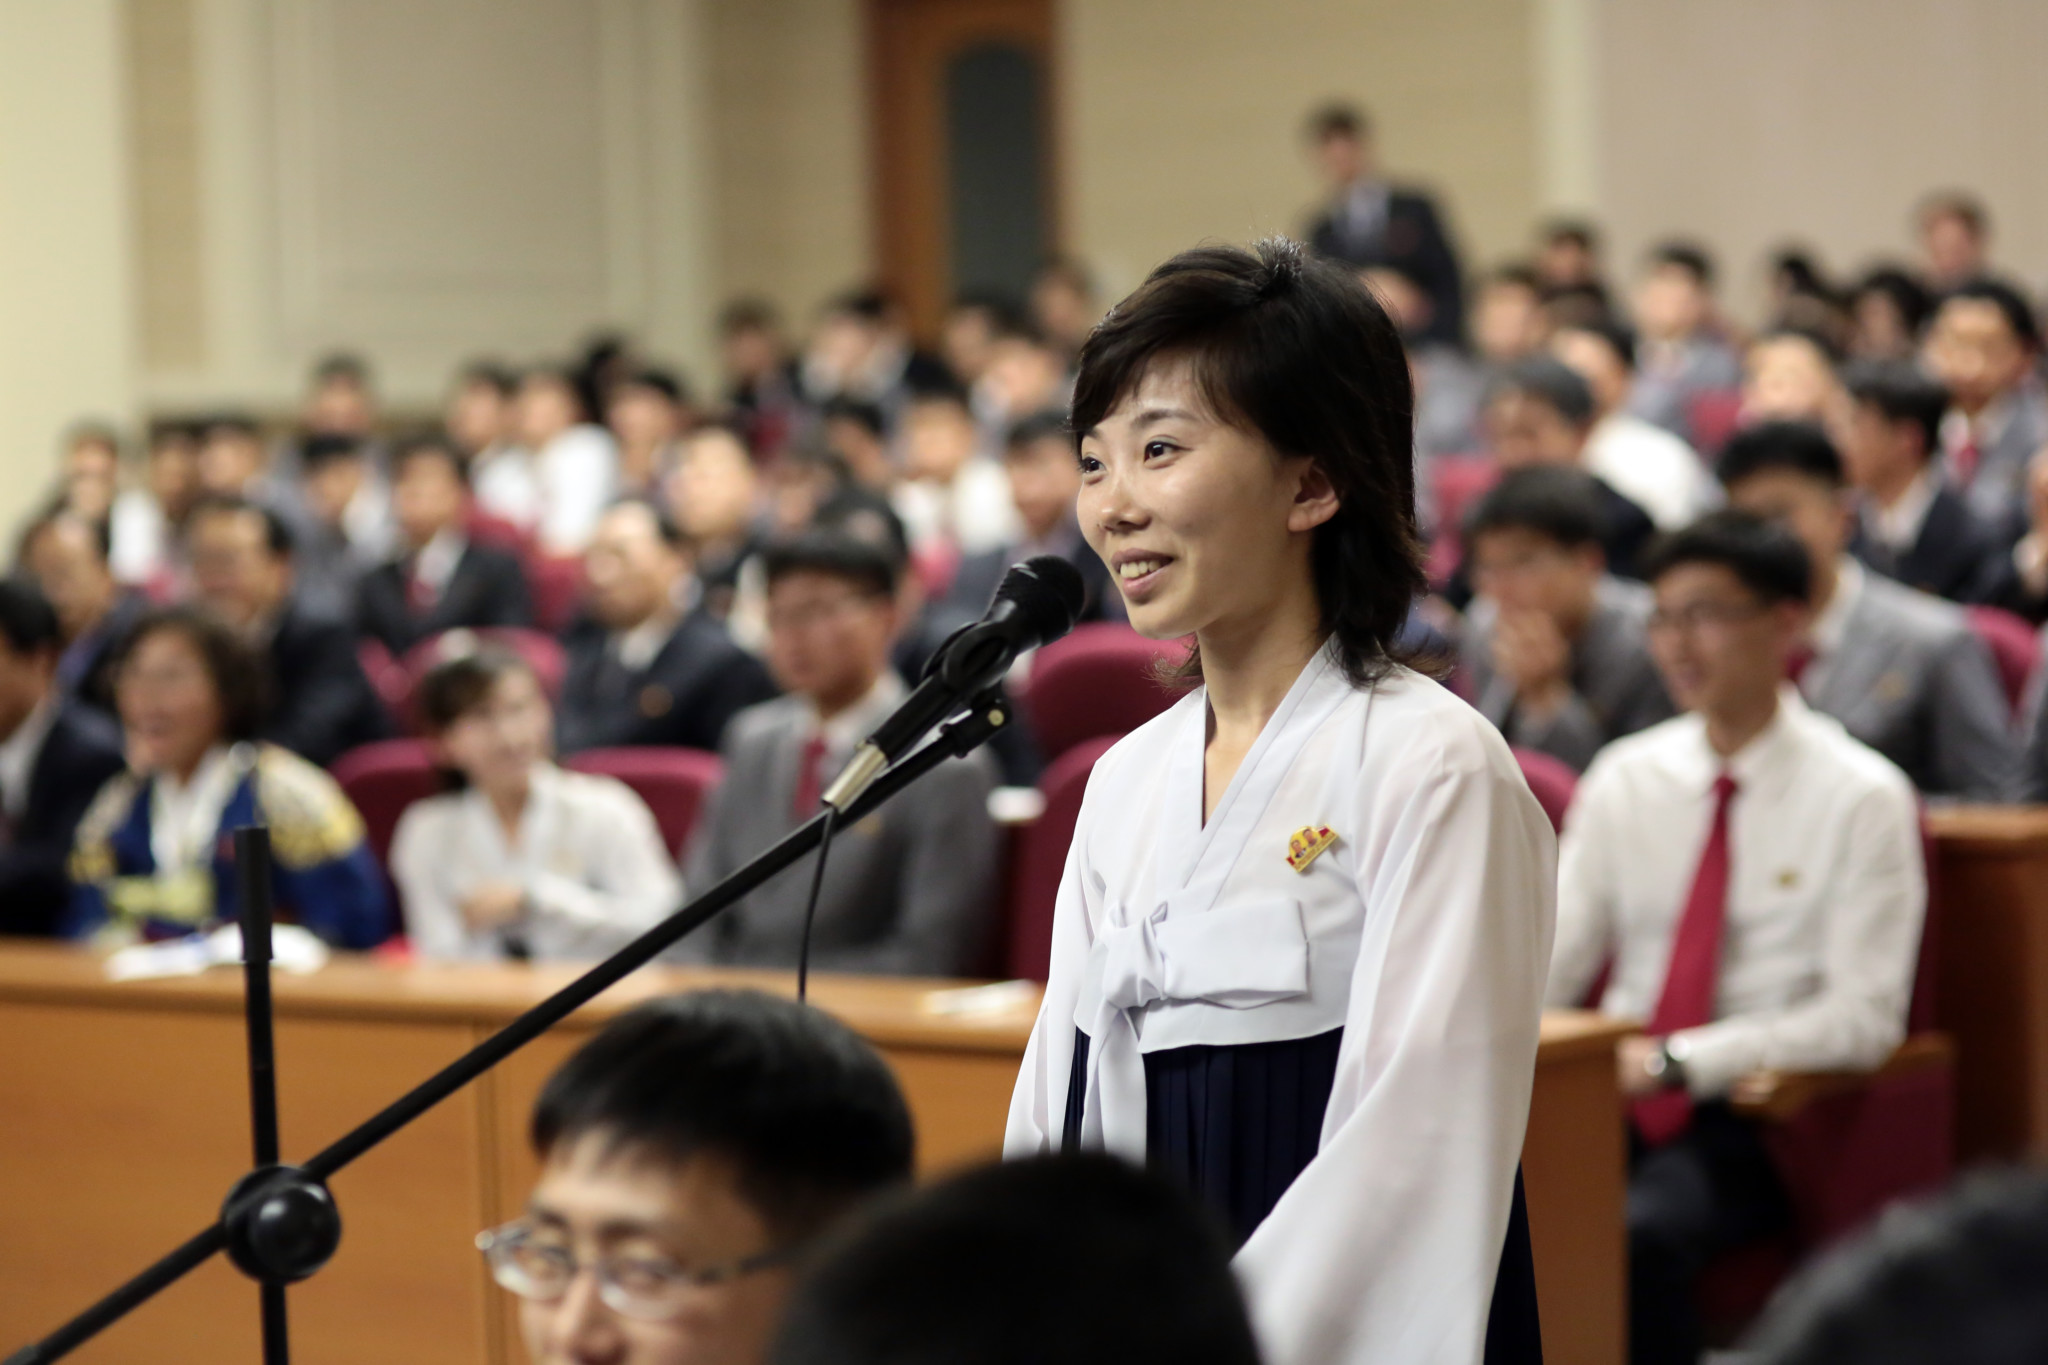 18 A student asking a question during the Q&A with a Nobel Laureate at Kim Il Sung University